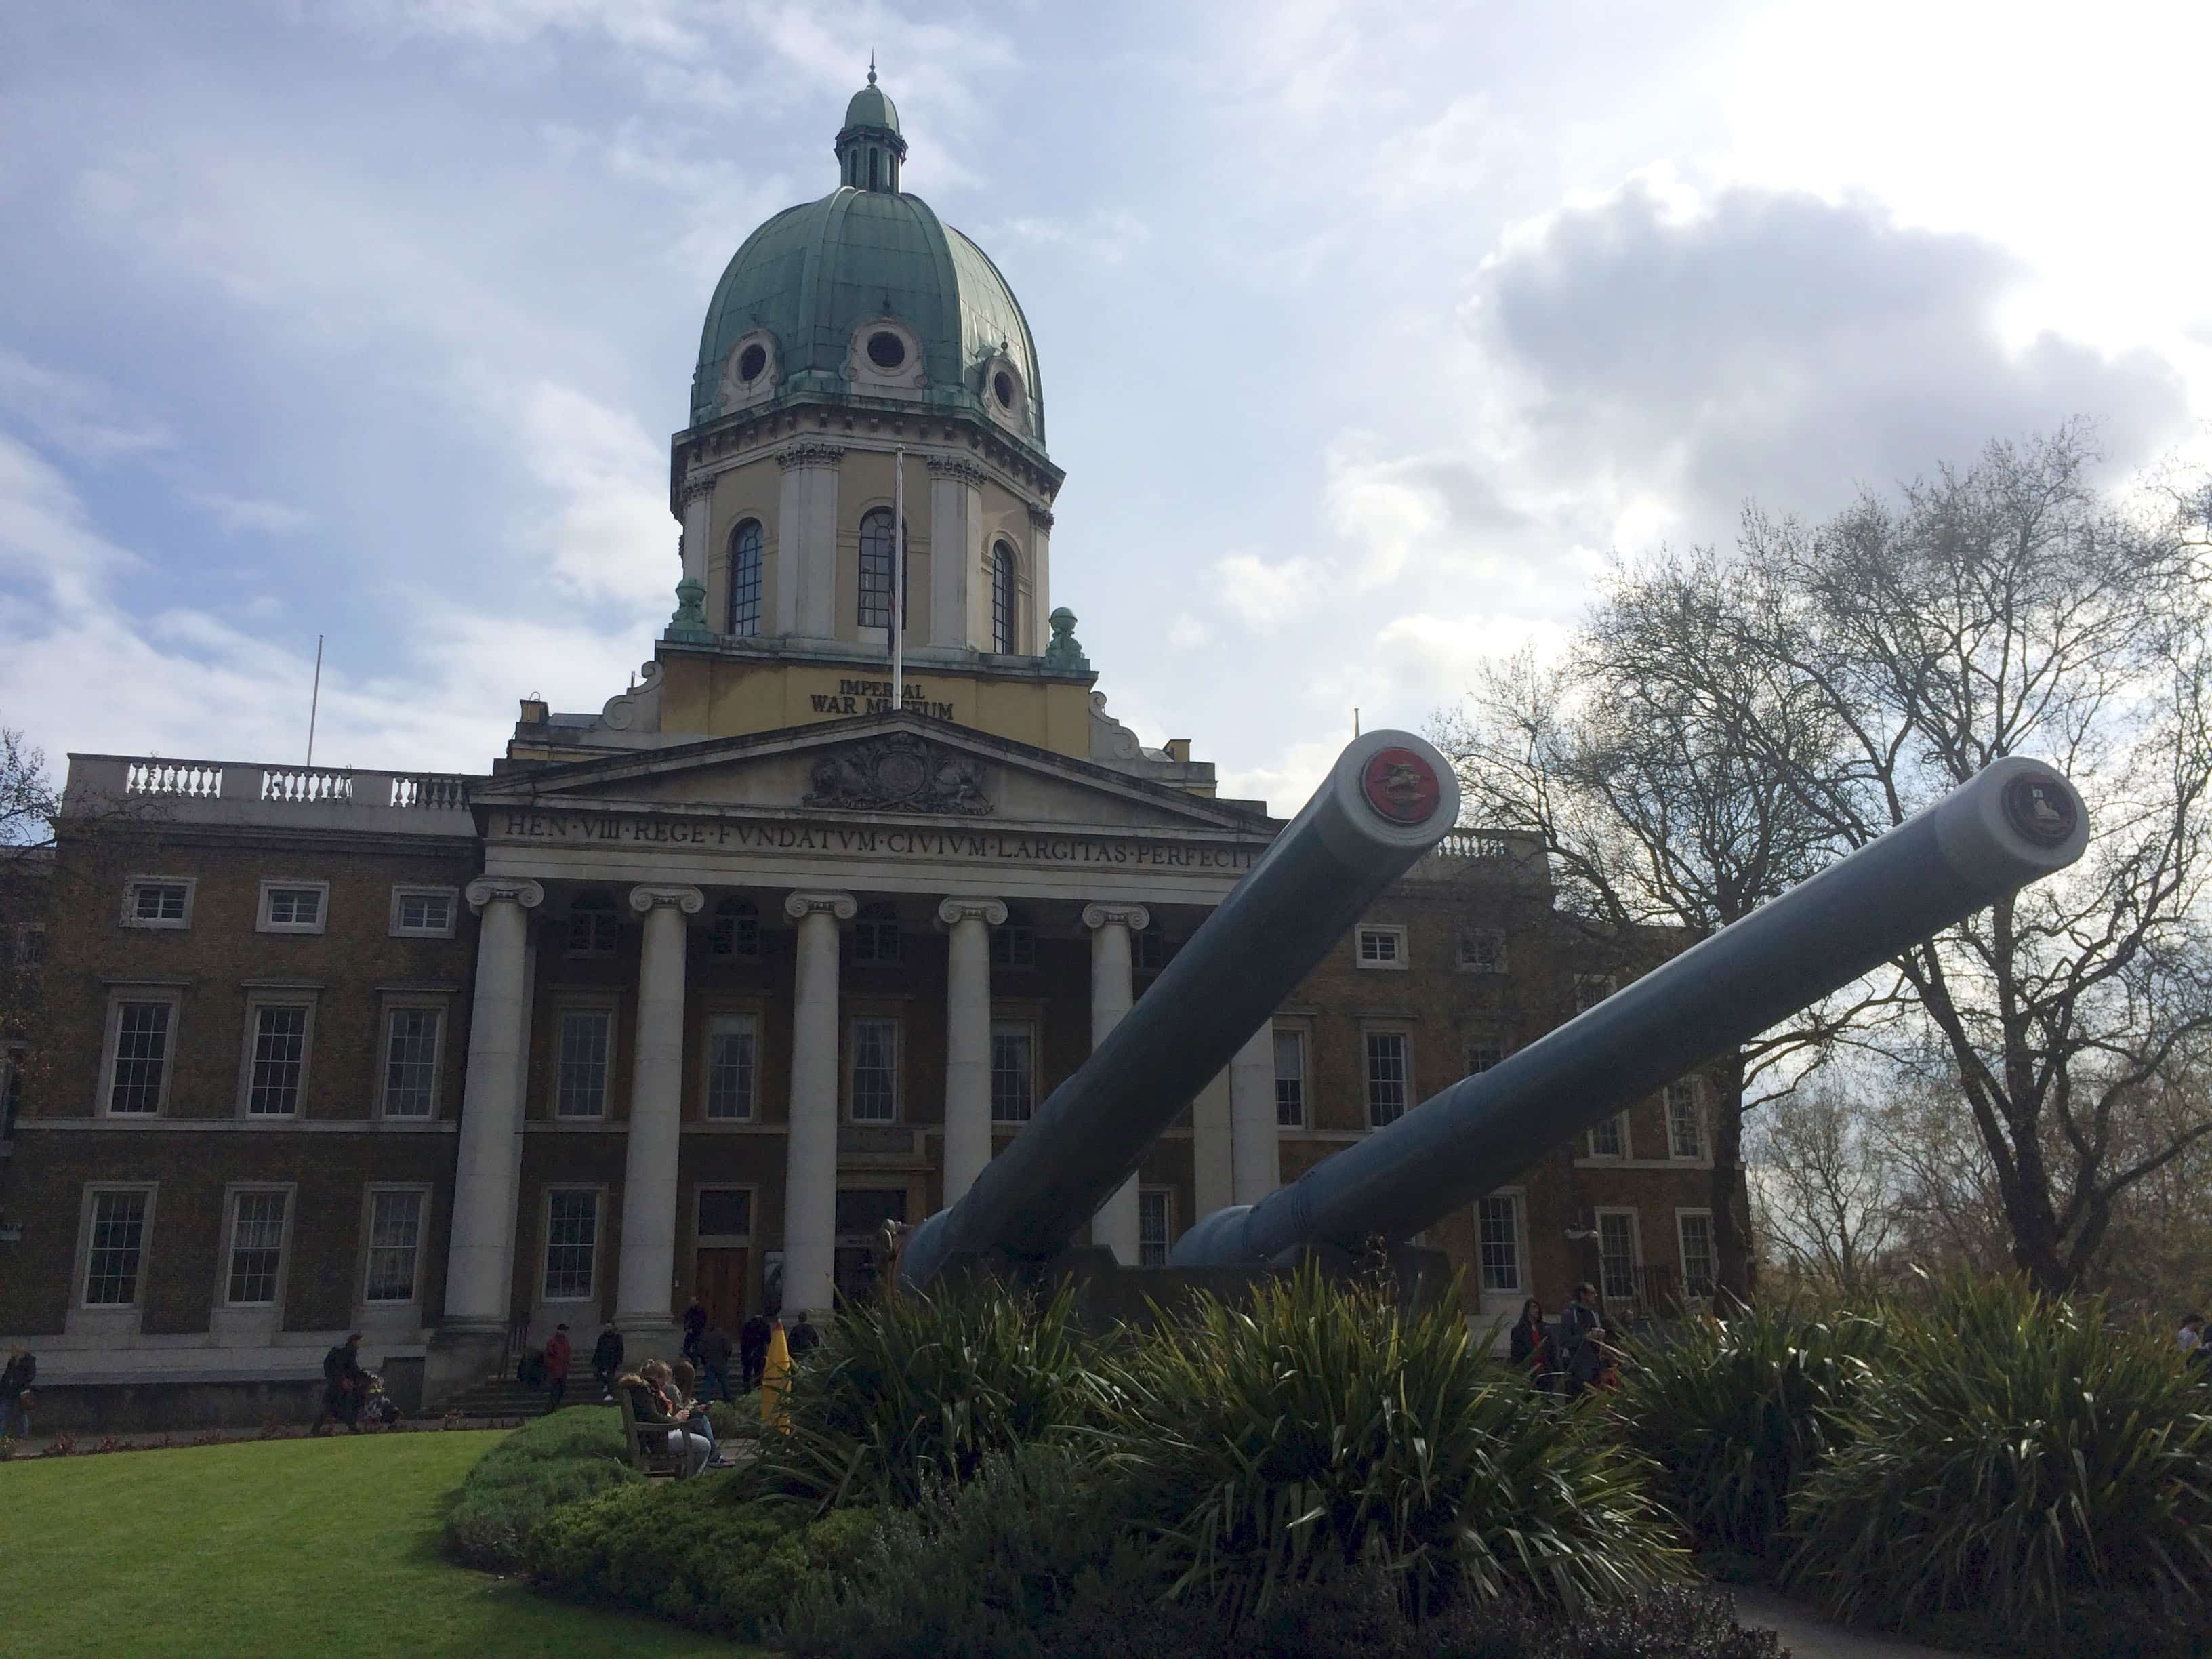 The Imperial War Museum in London: A Lesson in State Propaganda?